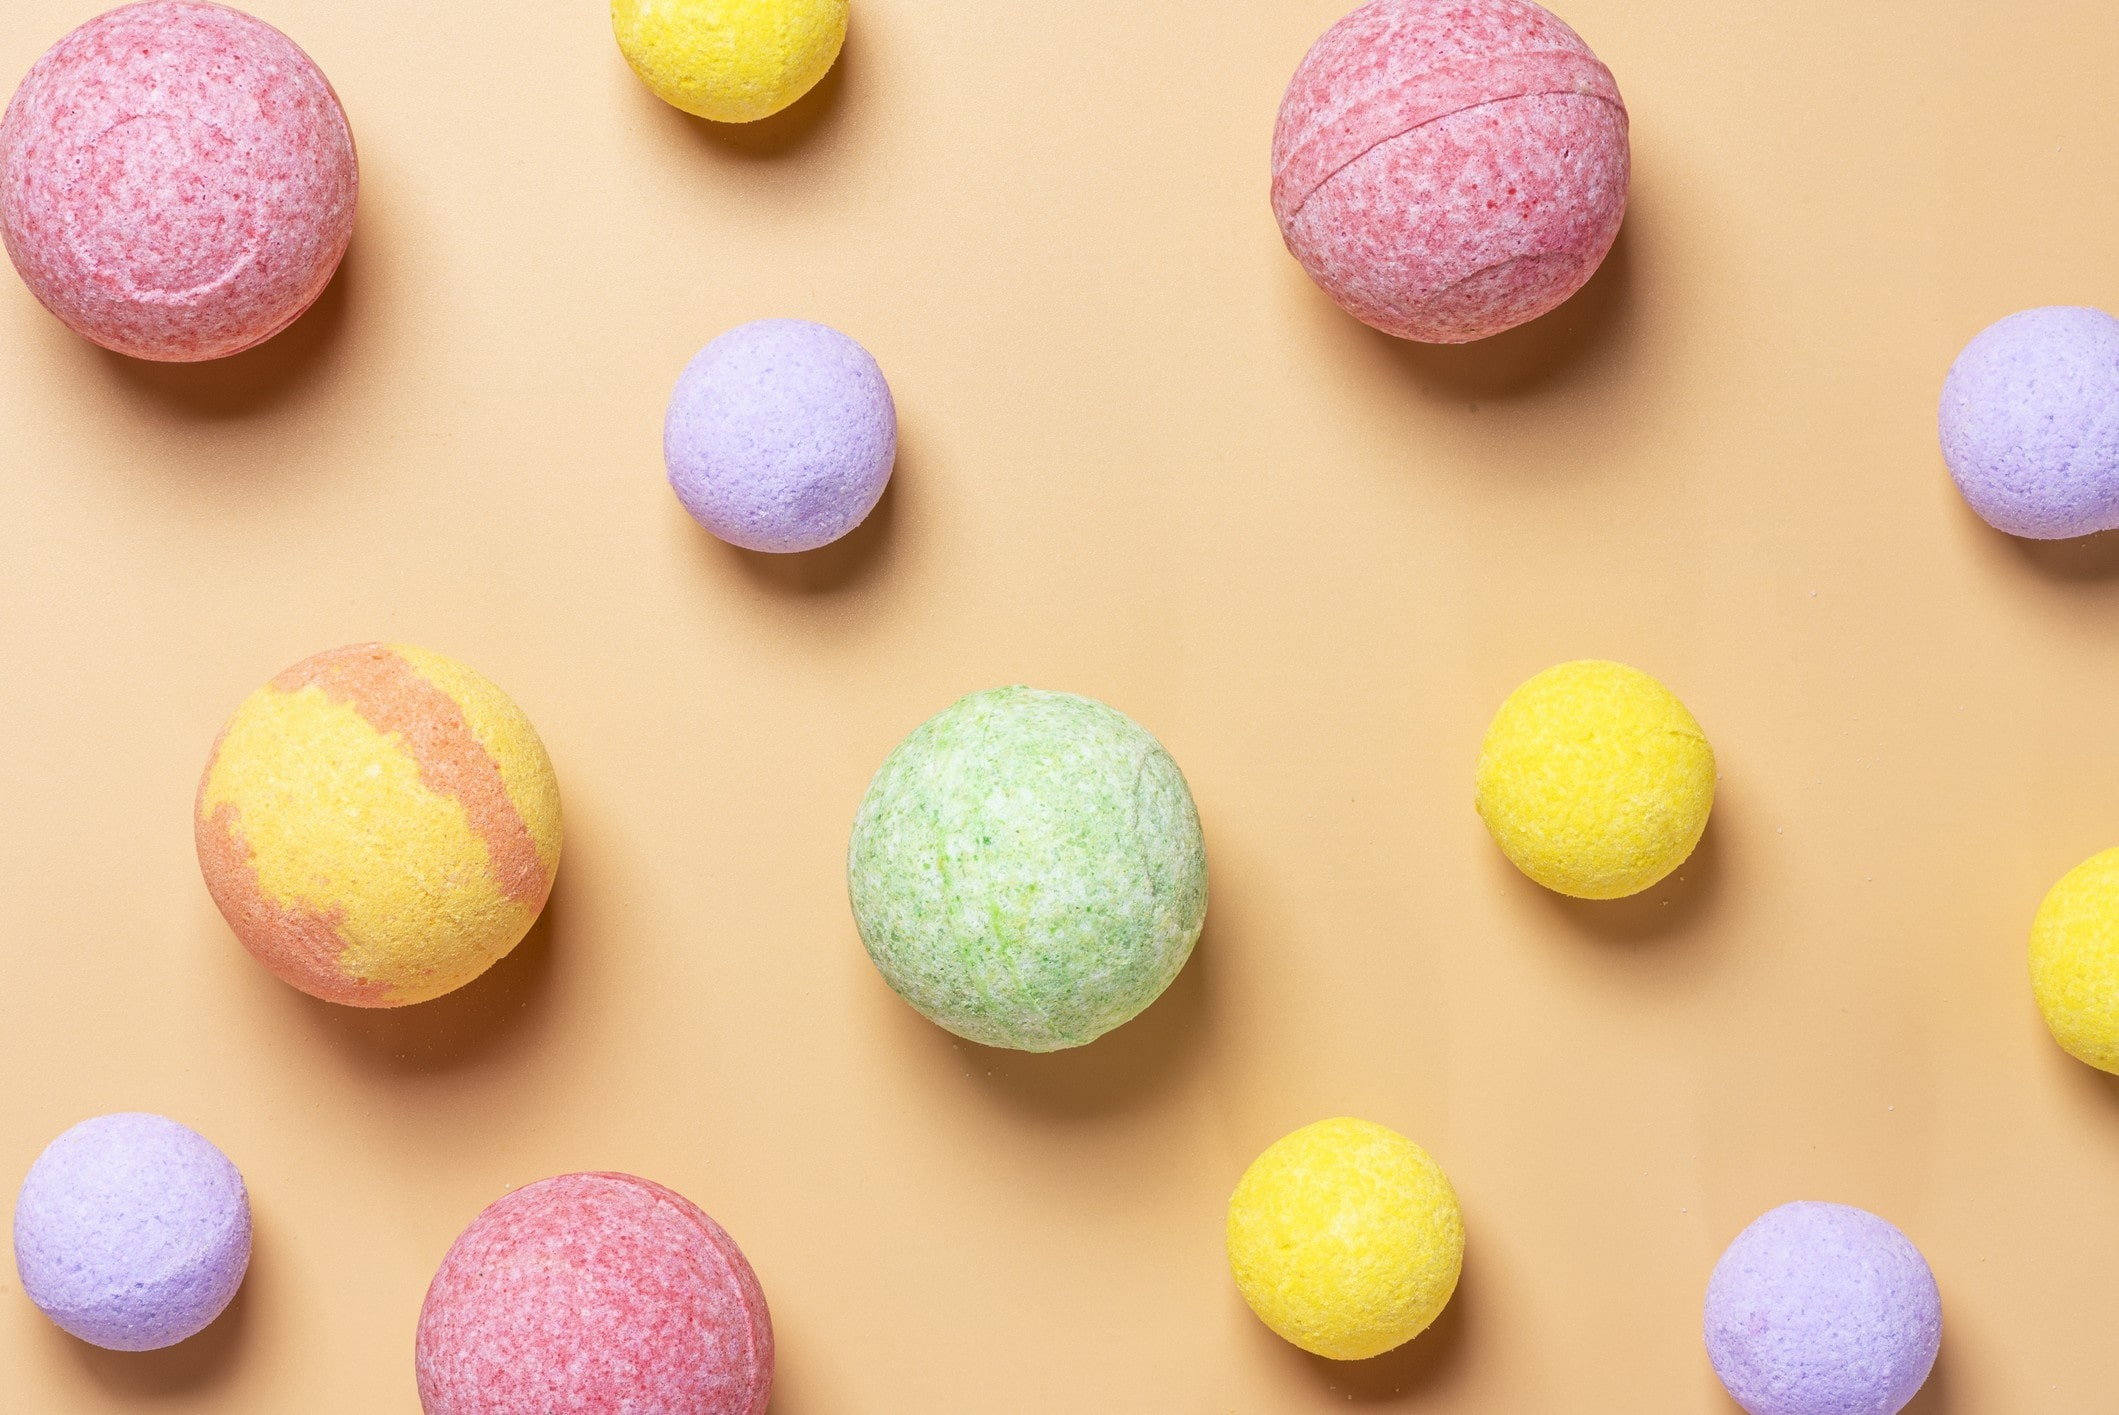 an array of different coloured bath bombs on a peachy background.